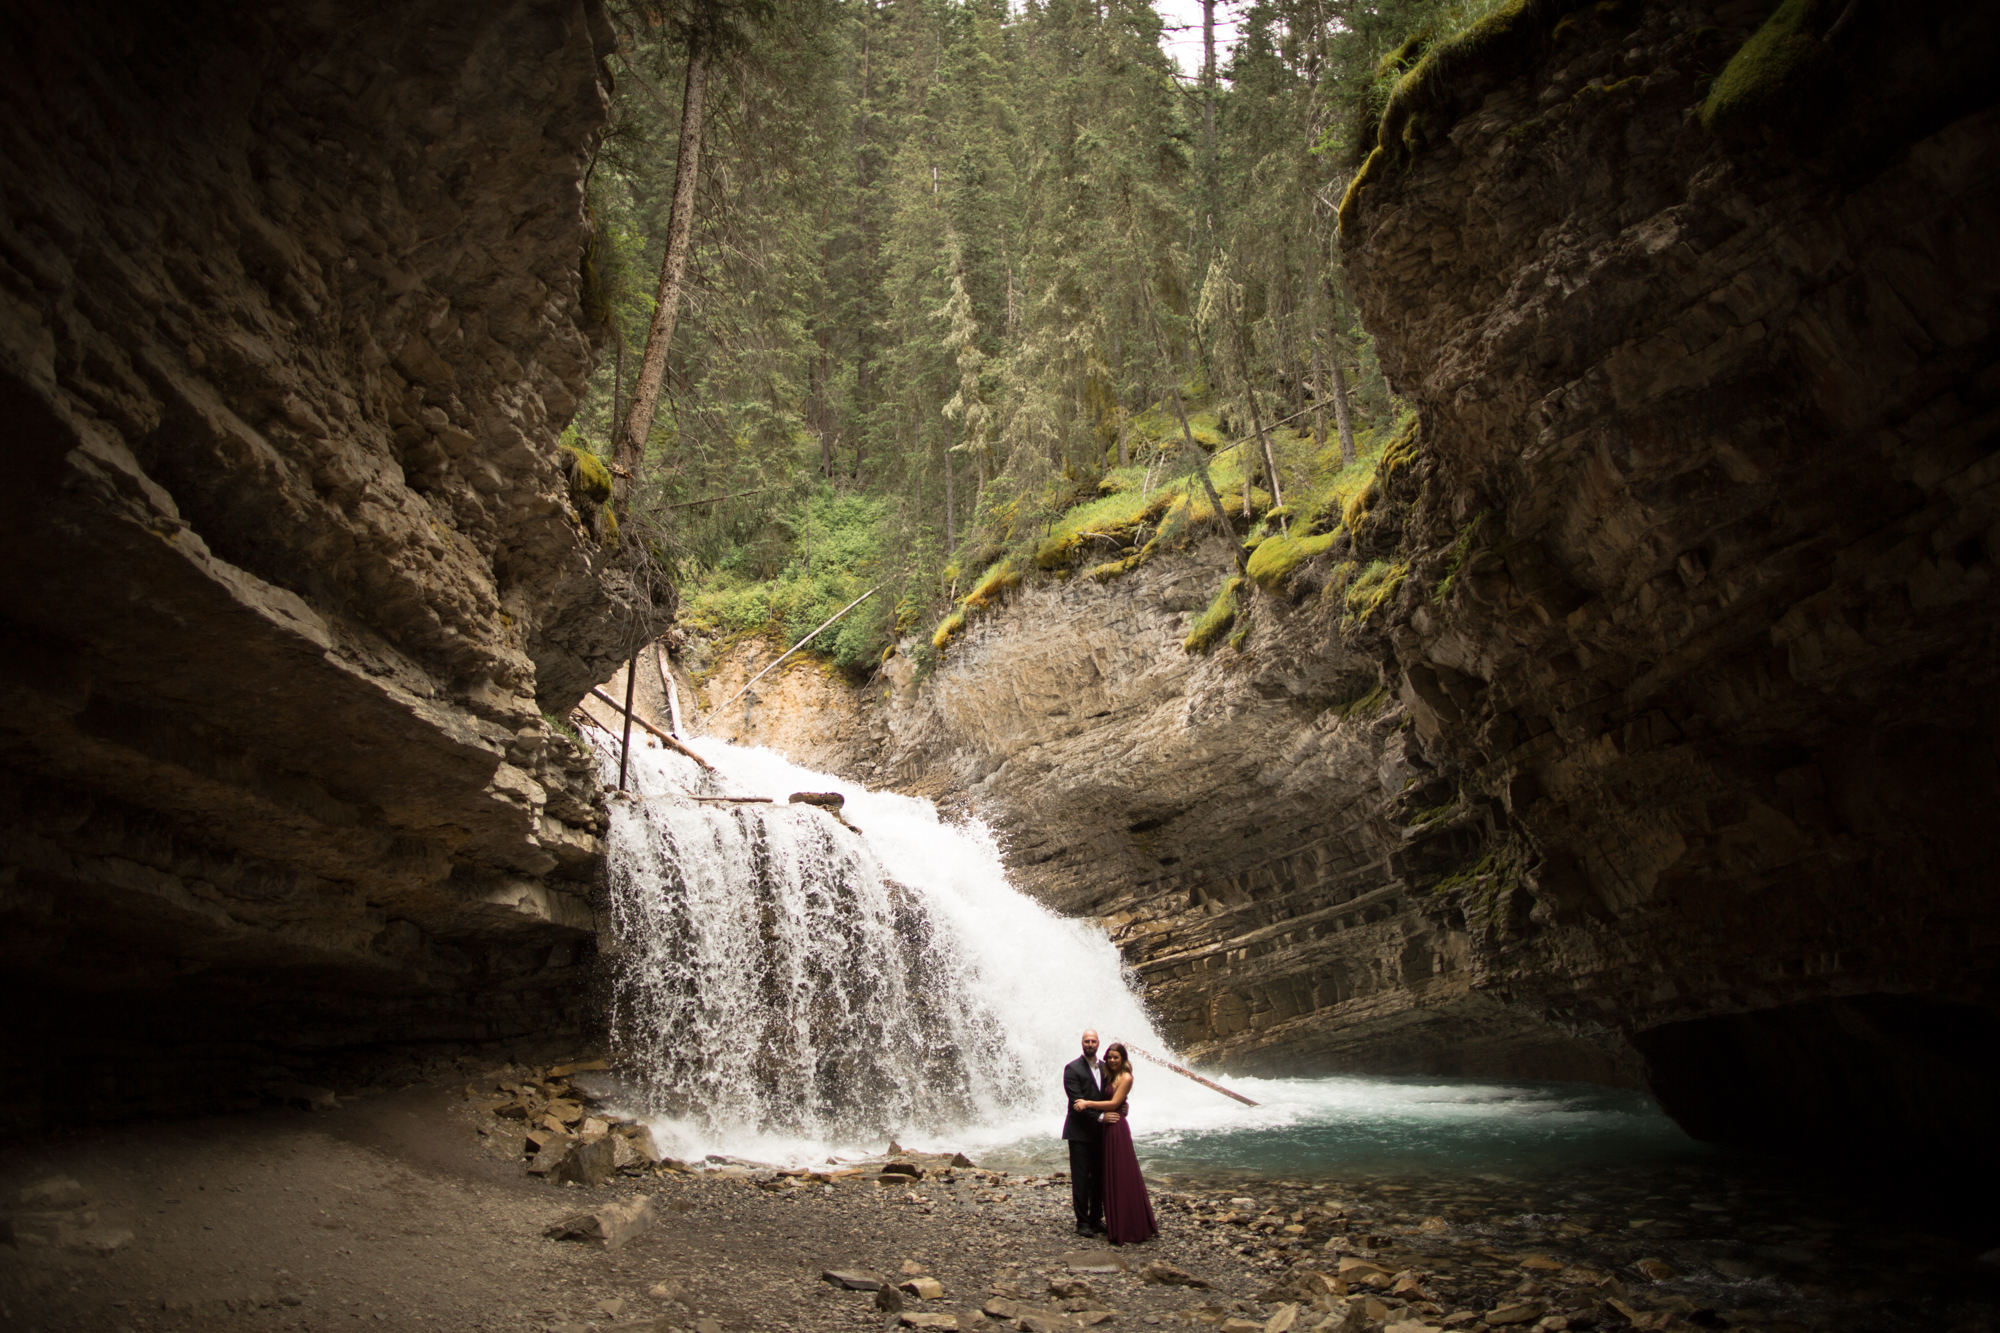 32Willow_and_Wolf_Photography_Sarah_and_Karman_Engagement_Banff-50Willow_and_Wolf_Photography_Sarah_and_Karman_Engagement_Banff-ATP_1891